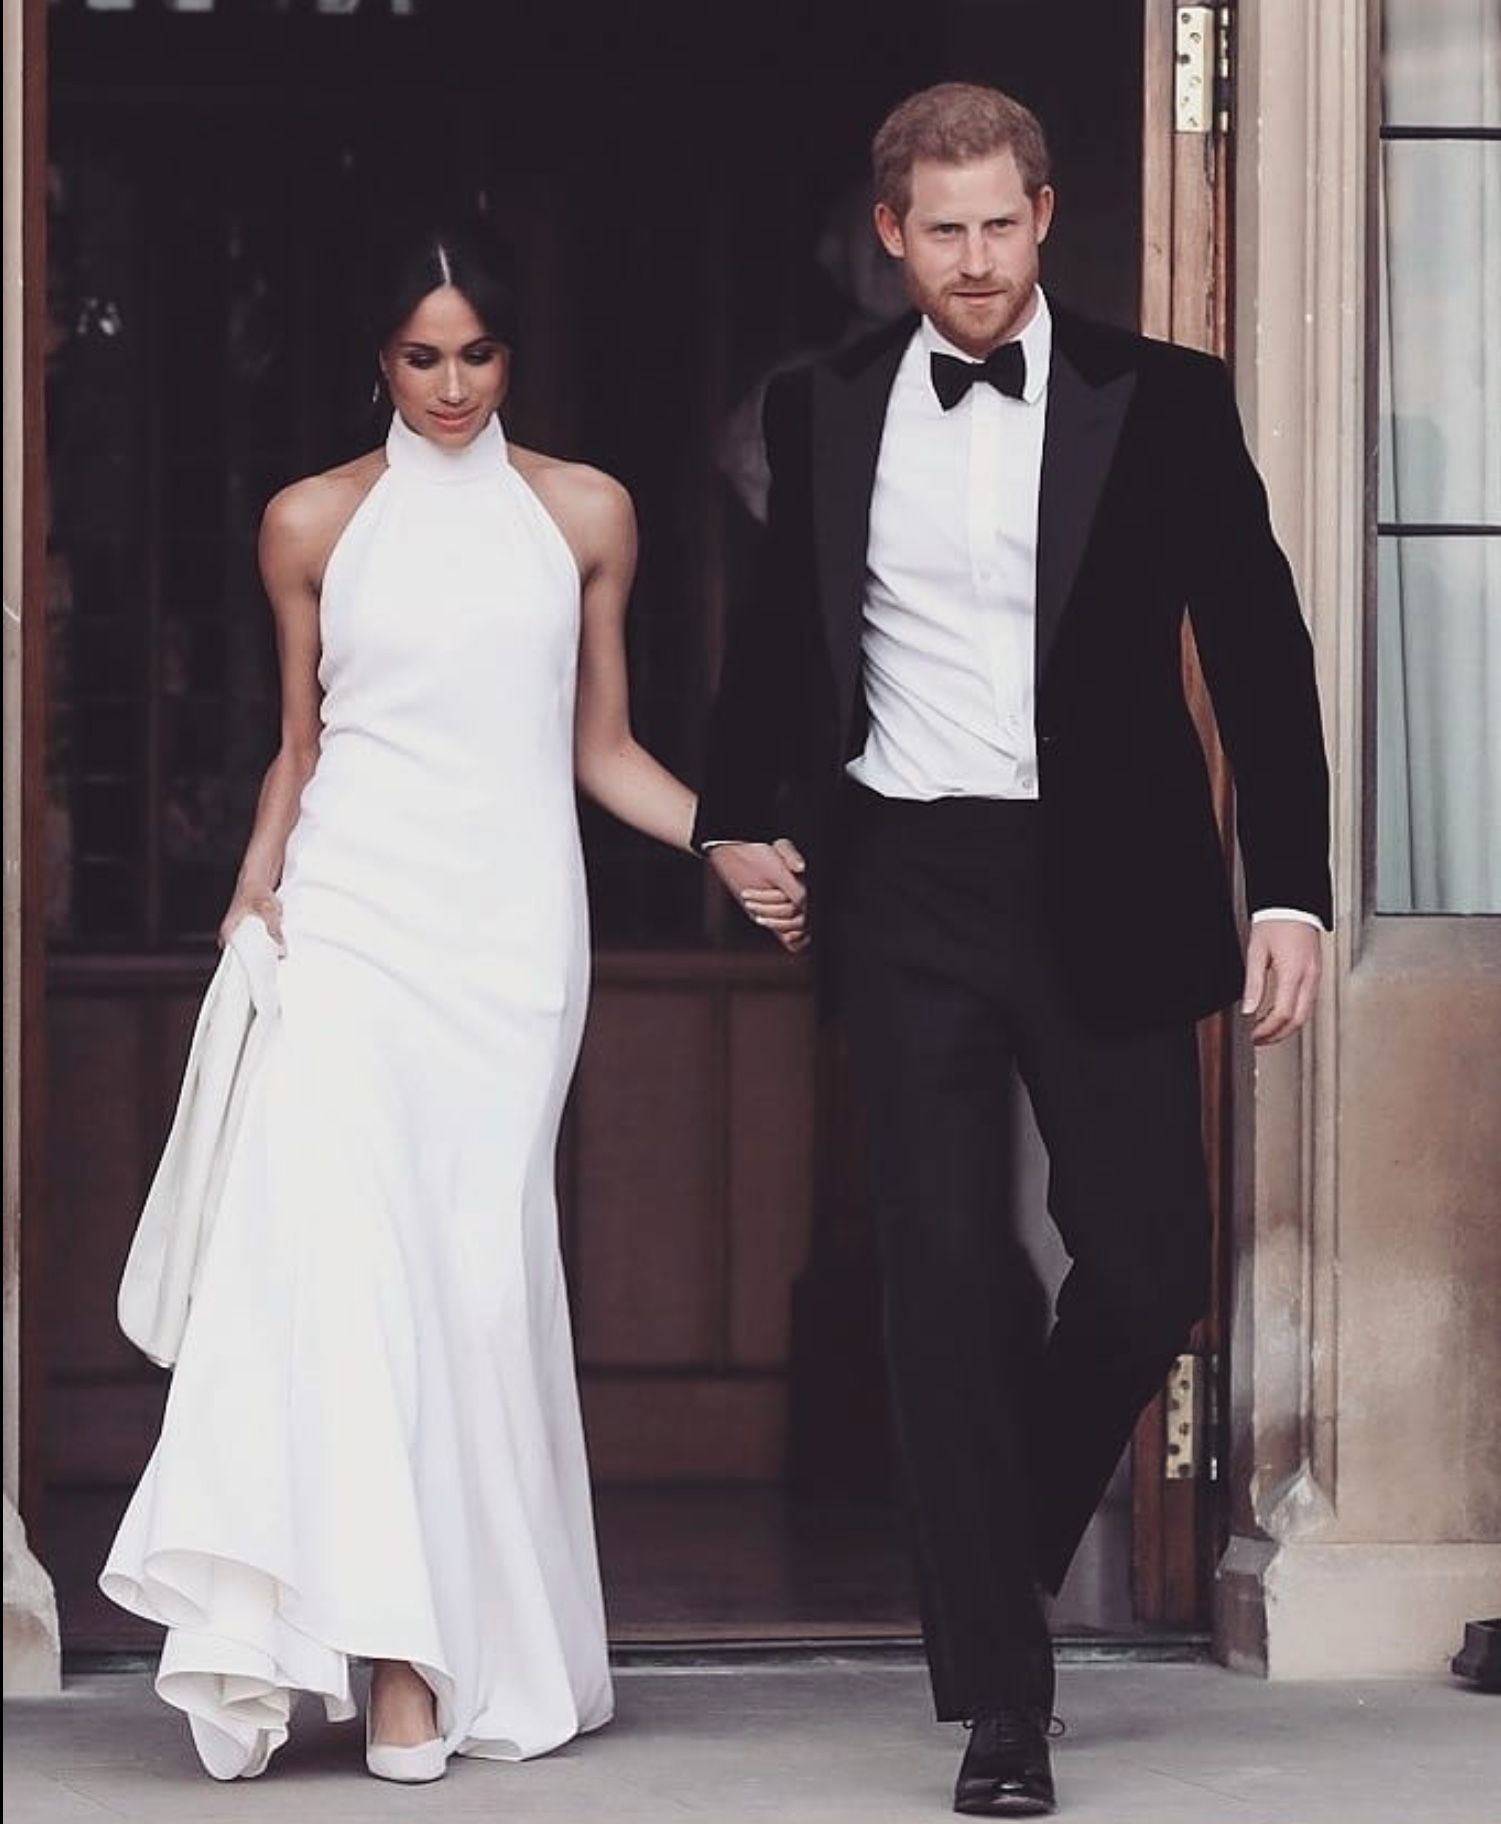 Pin By Mj Mikaelson On Prince Harry And Meghan Markle